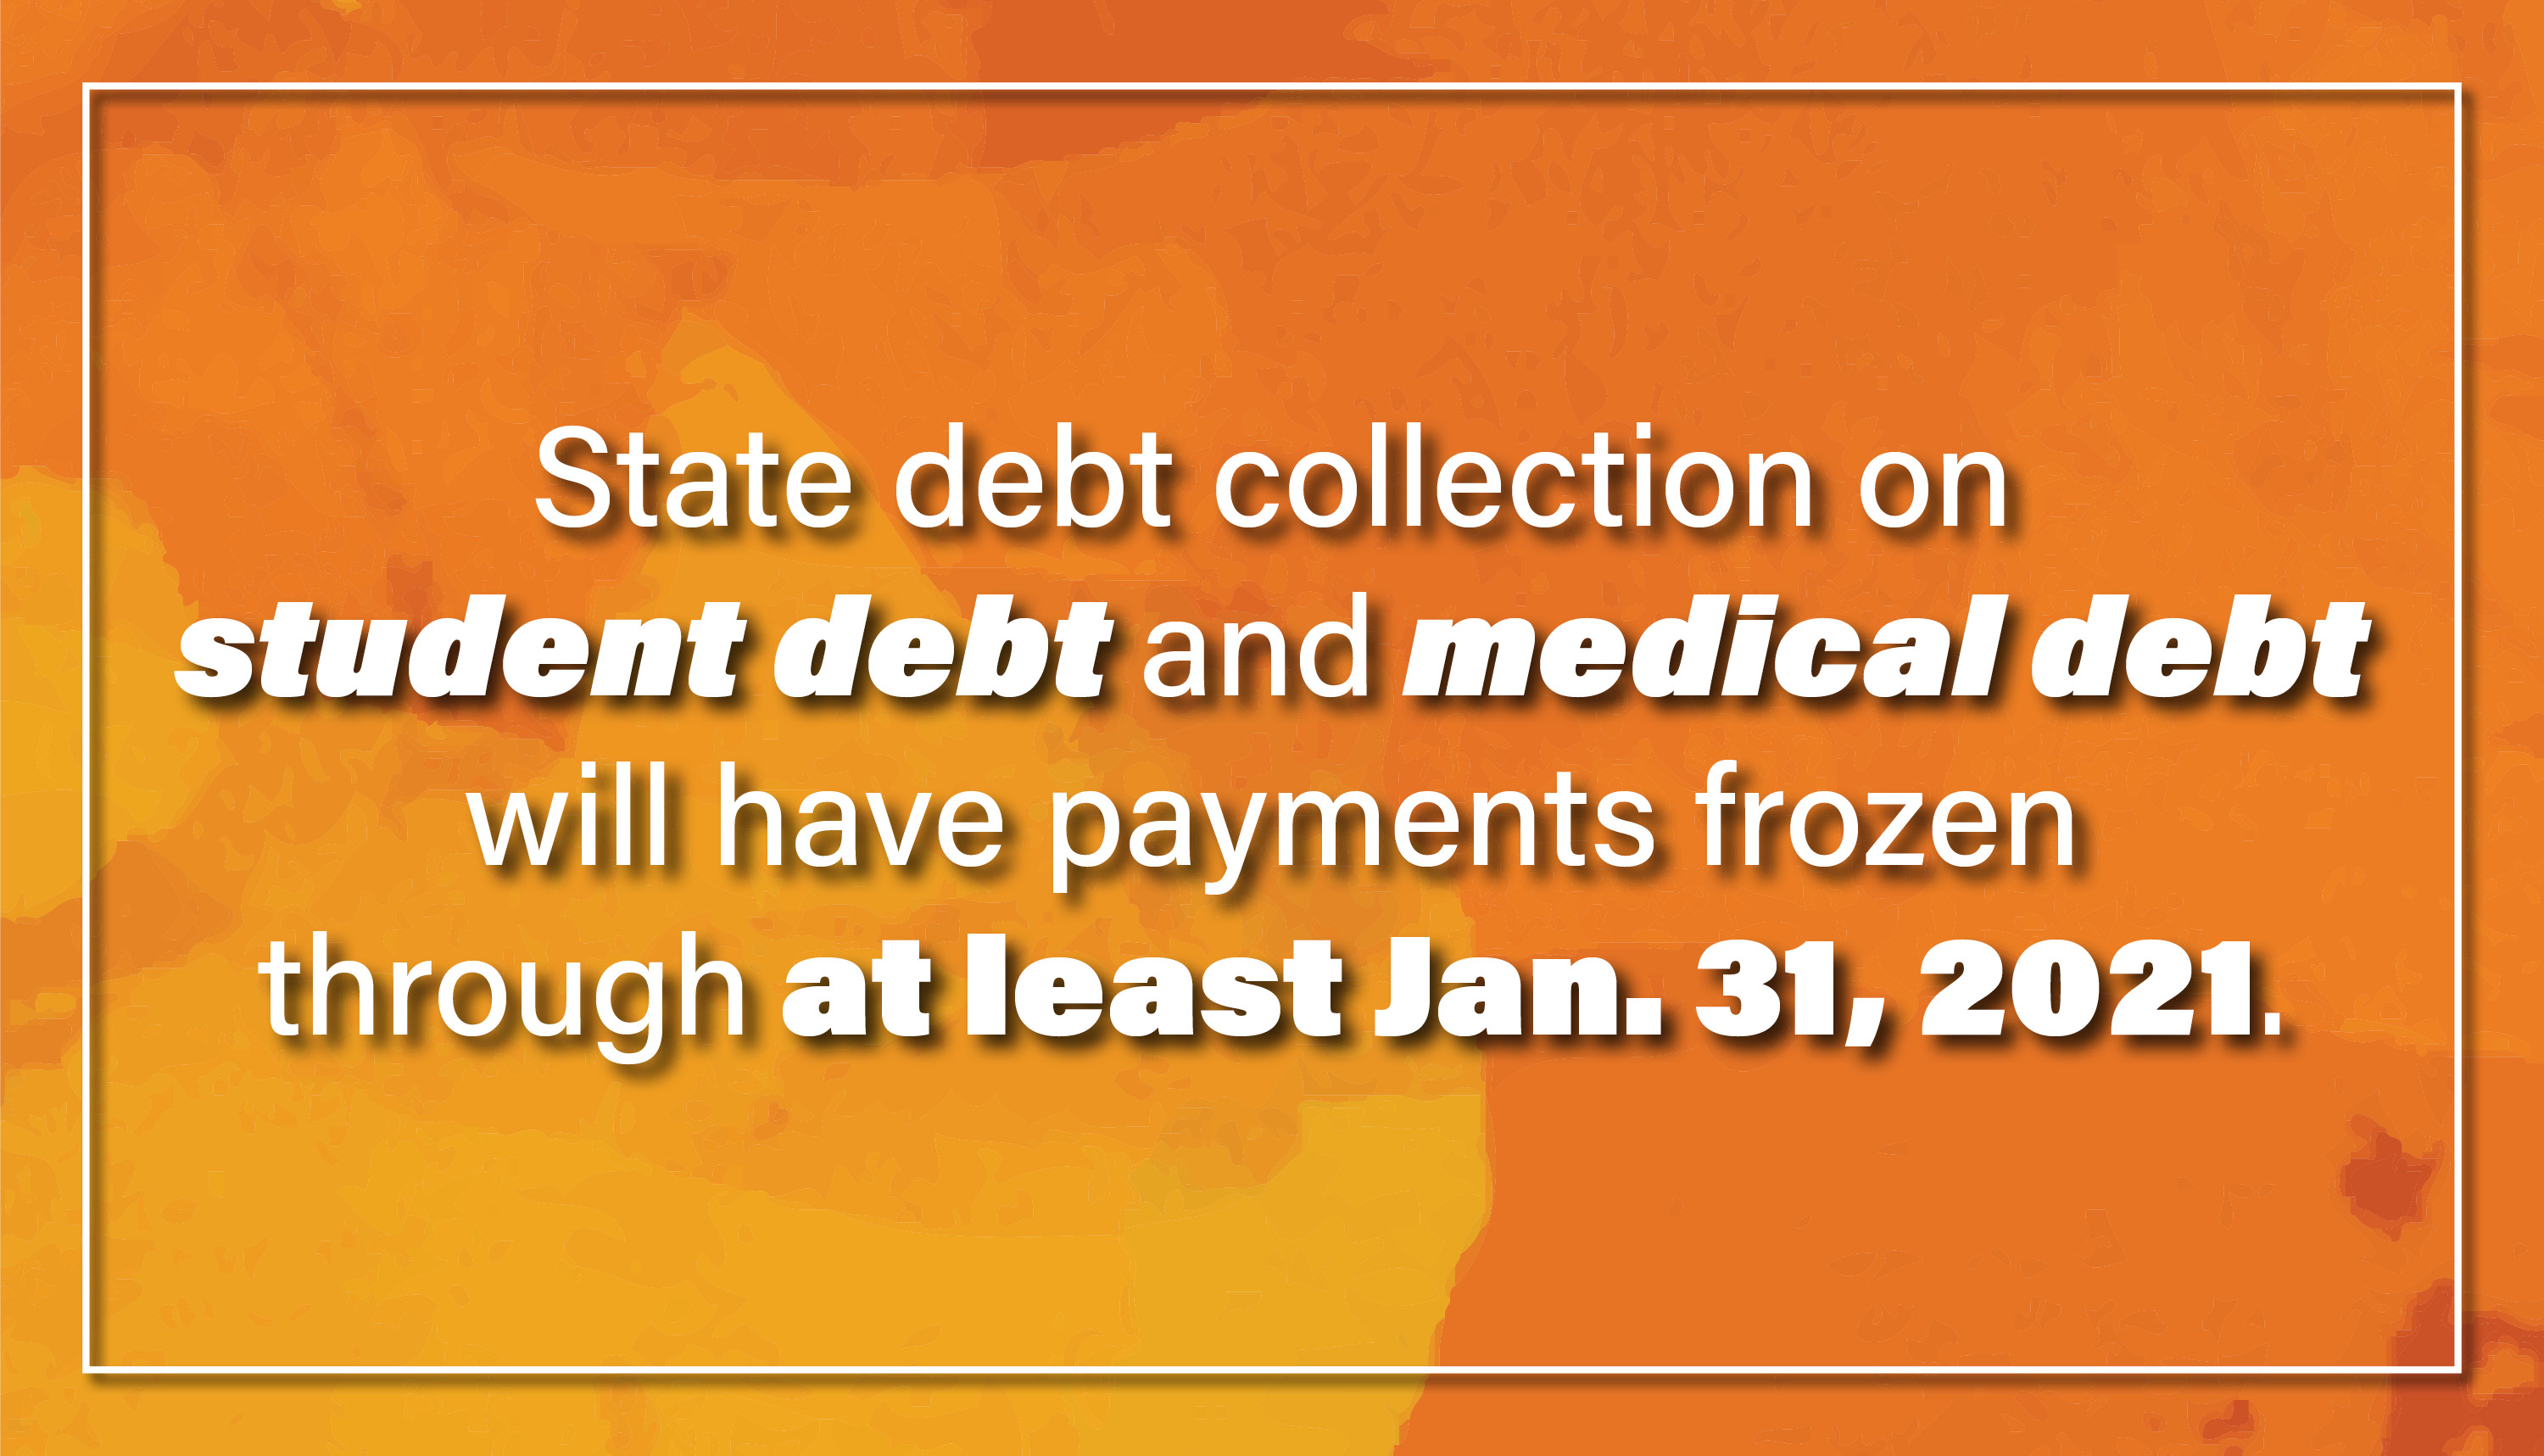 State debt collection on student debt and medical debt